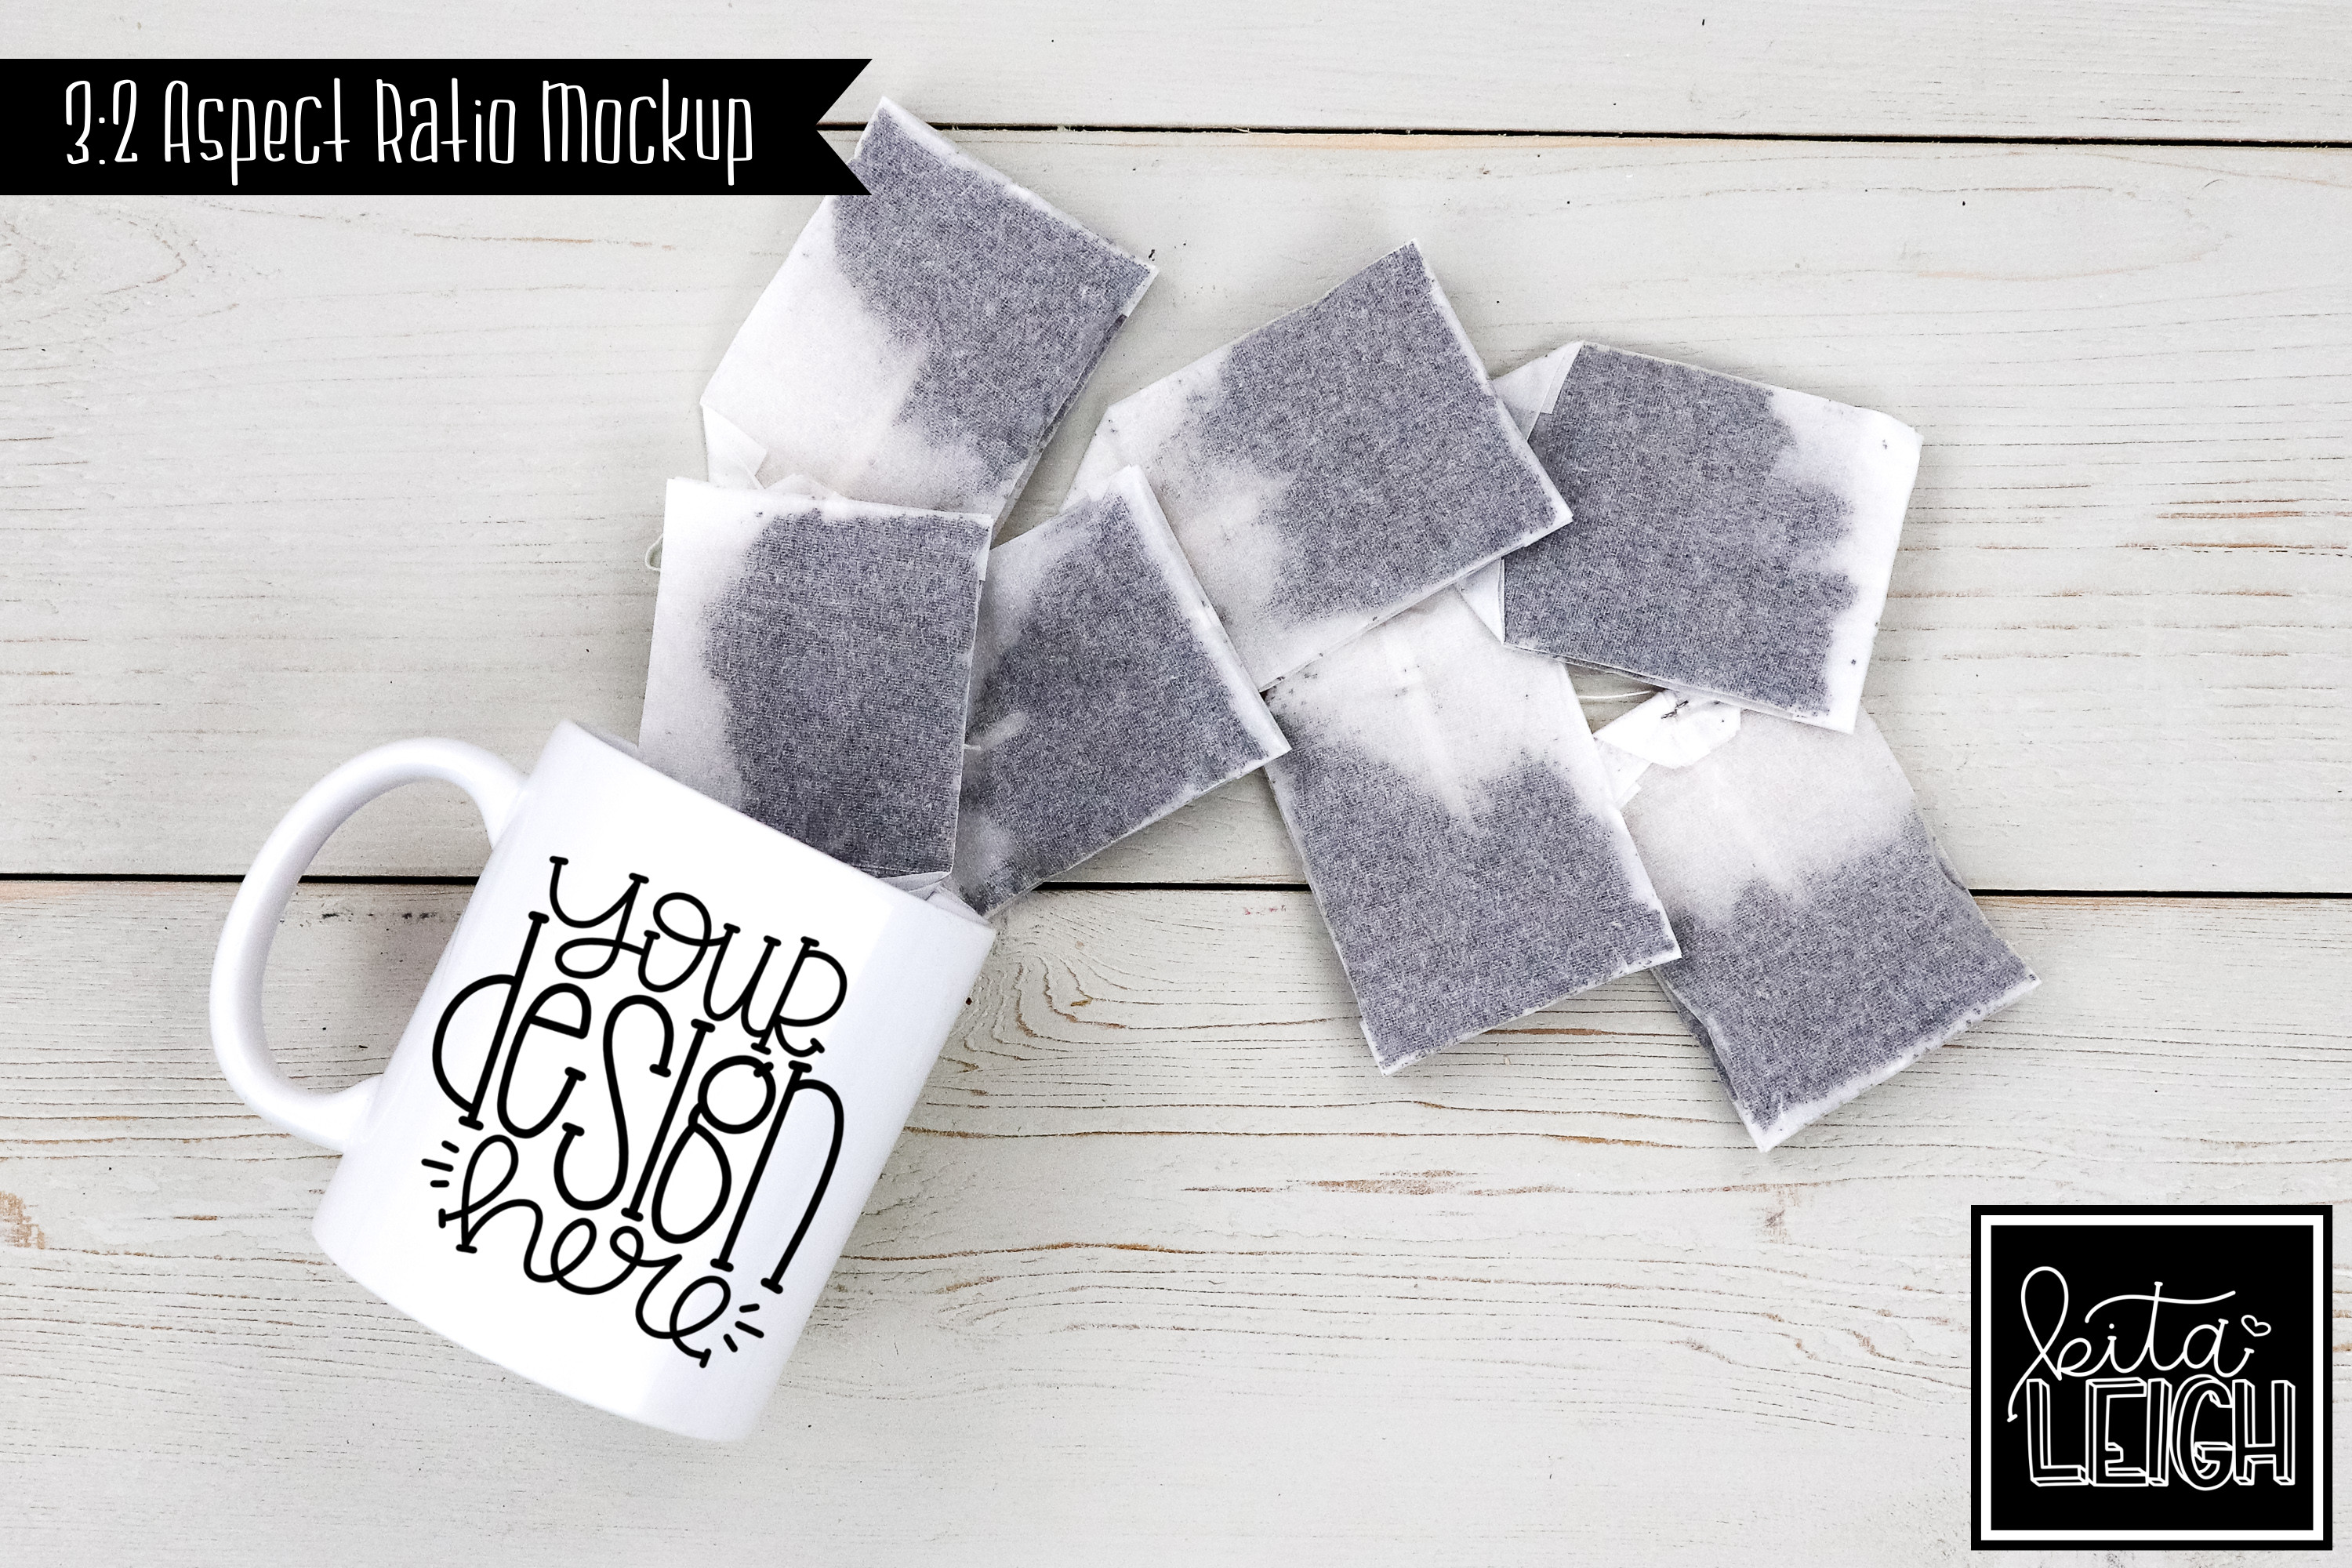 11 oz Mug Mockup with Chocolate, Coffee, Tea, and Mallows example image 3